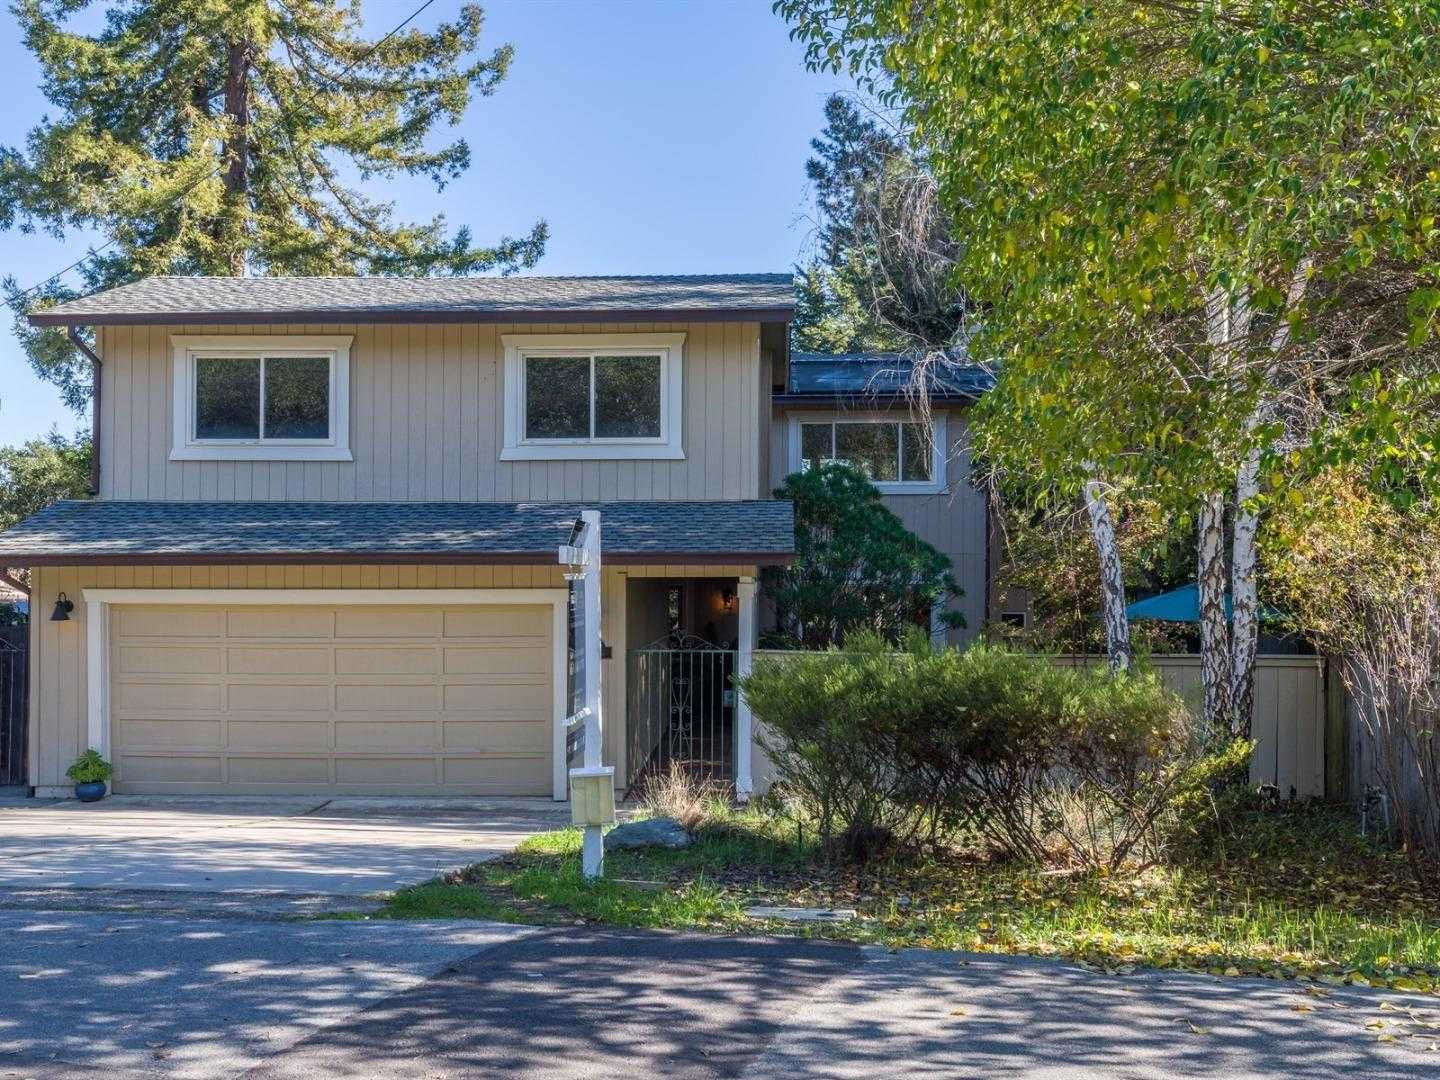 $2,295,000 - 4Br/3Ba -  for Sale in Redwood City